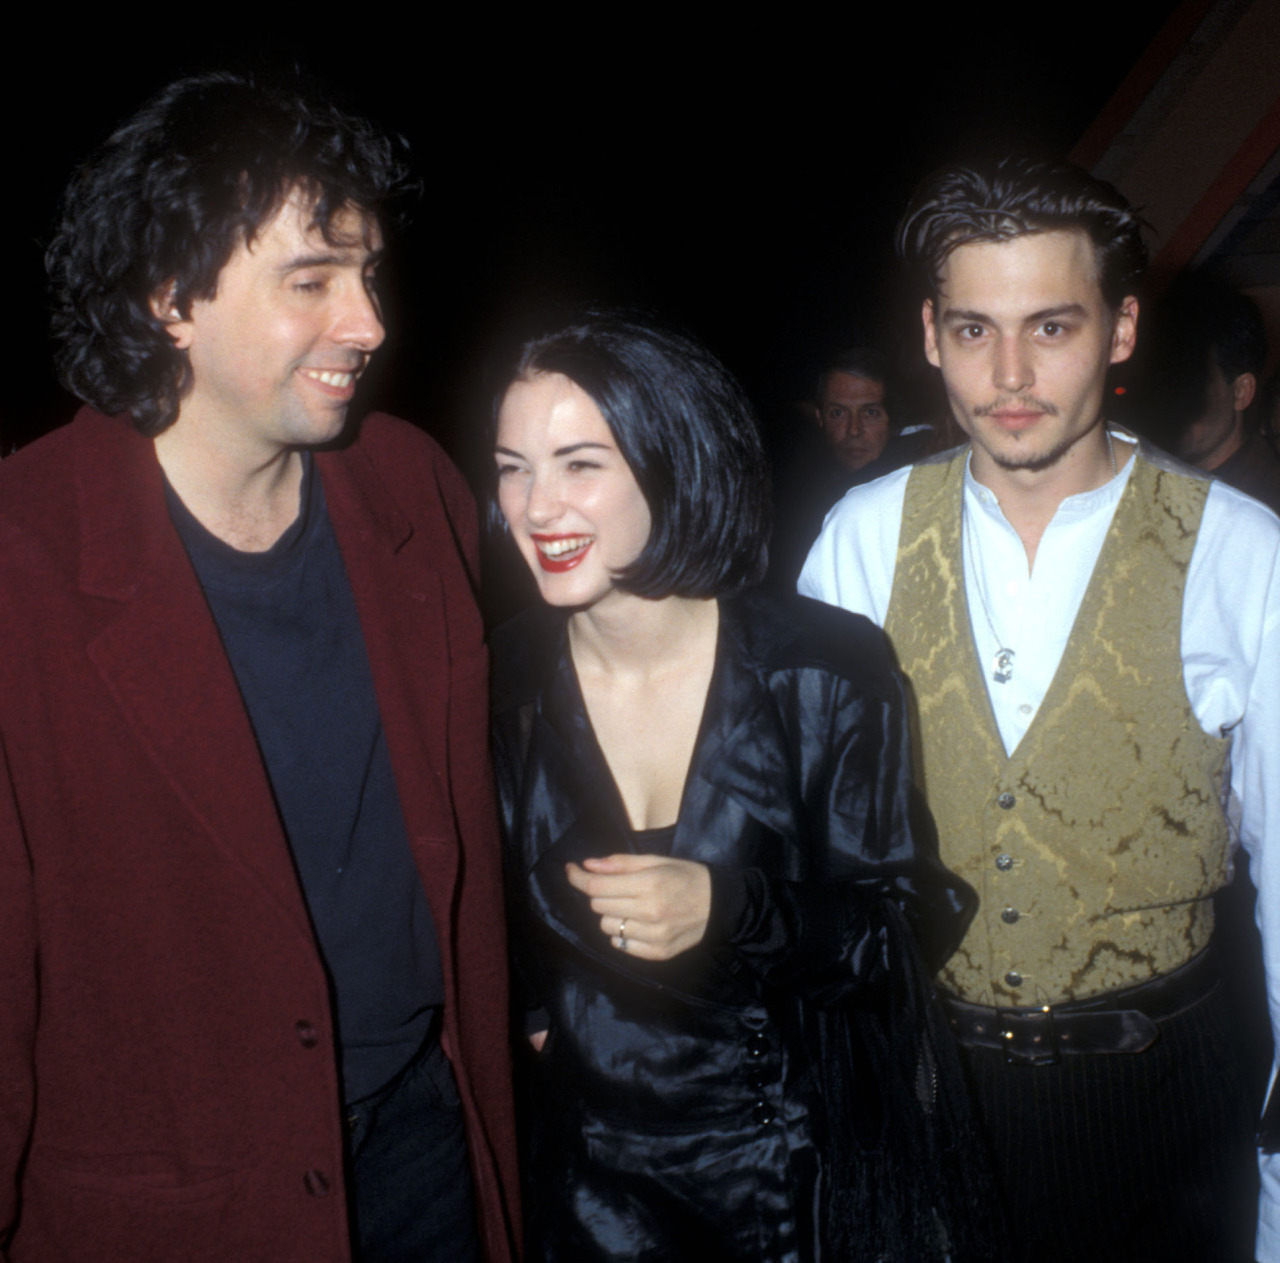 Tim Burton, Winona Ryder and Johnny Depp at the Edward Scissorhands premiere,  December 6, 1990